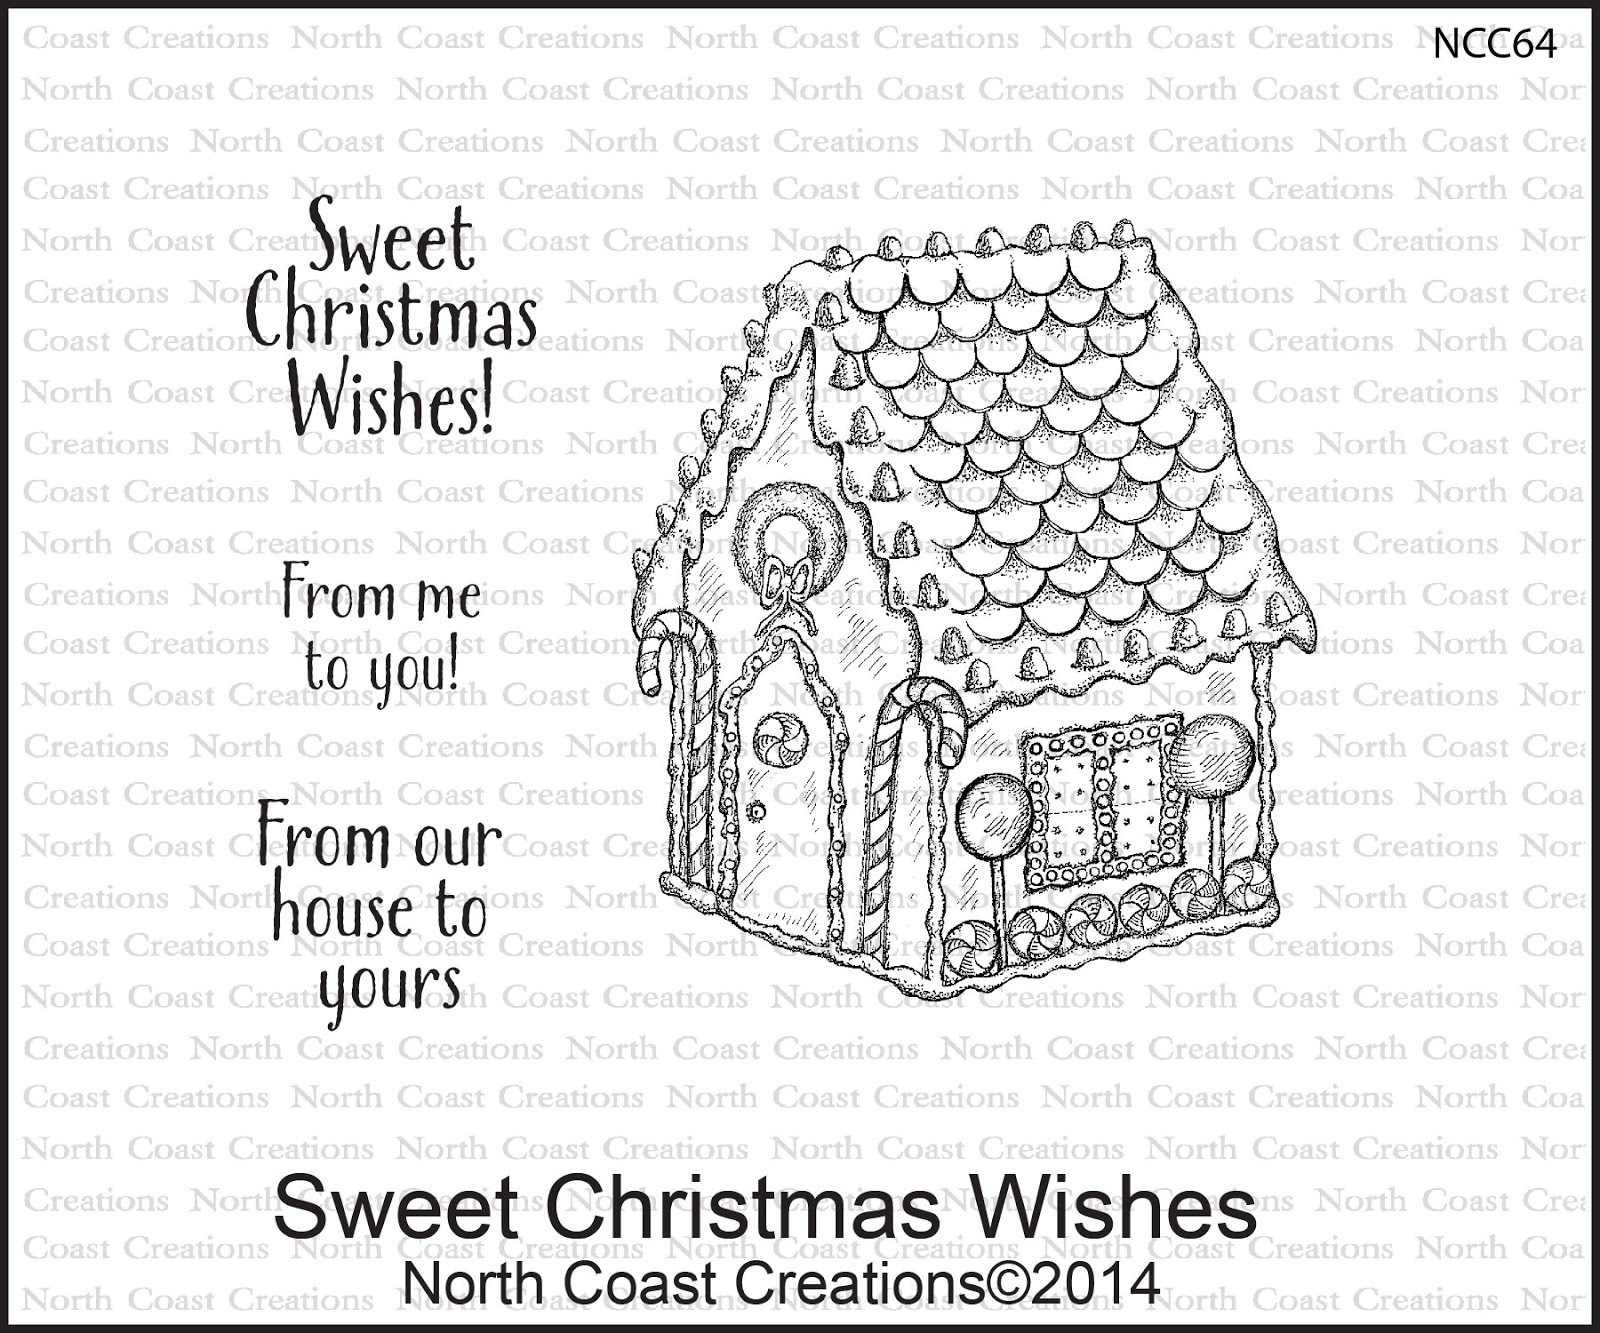 https://www.northcoastcreations.com/index.php/new-releases/2014-september/ncc64-sweet-christmas-wishes.html